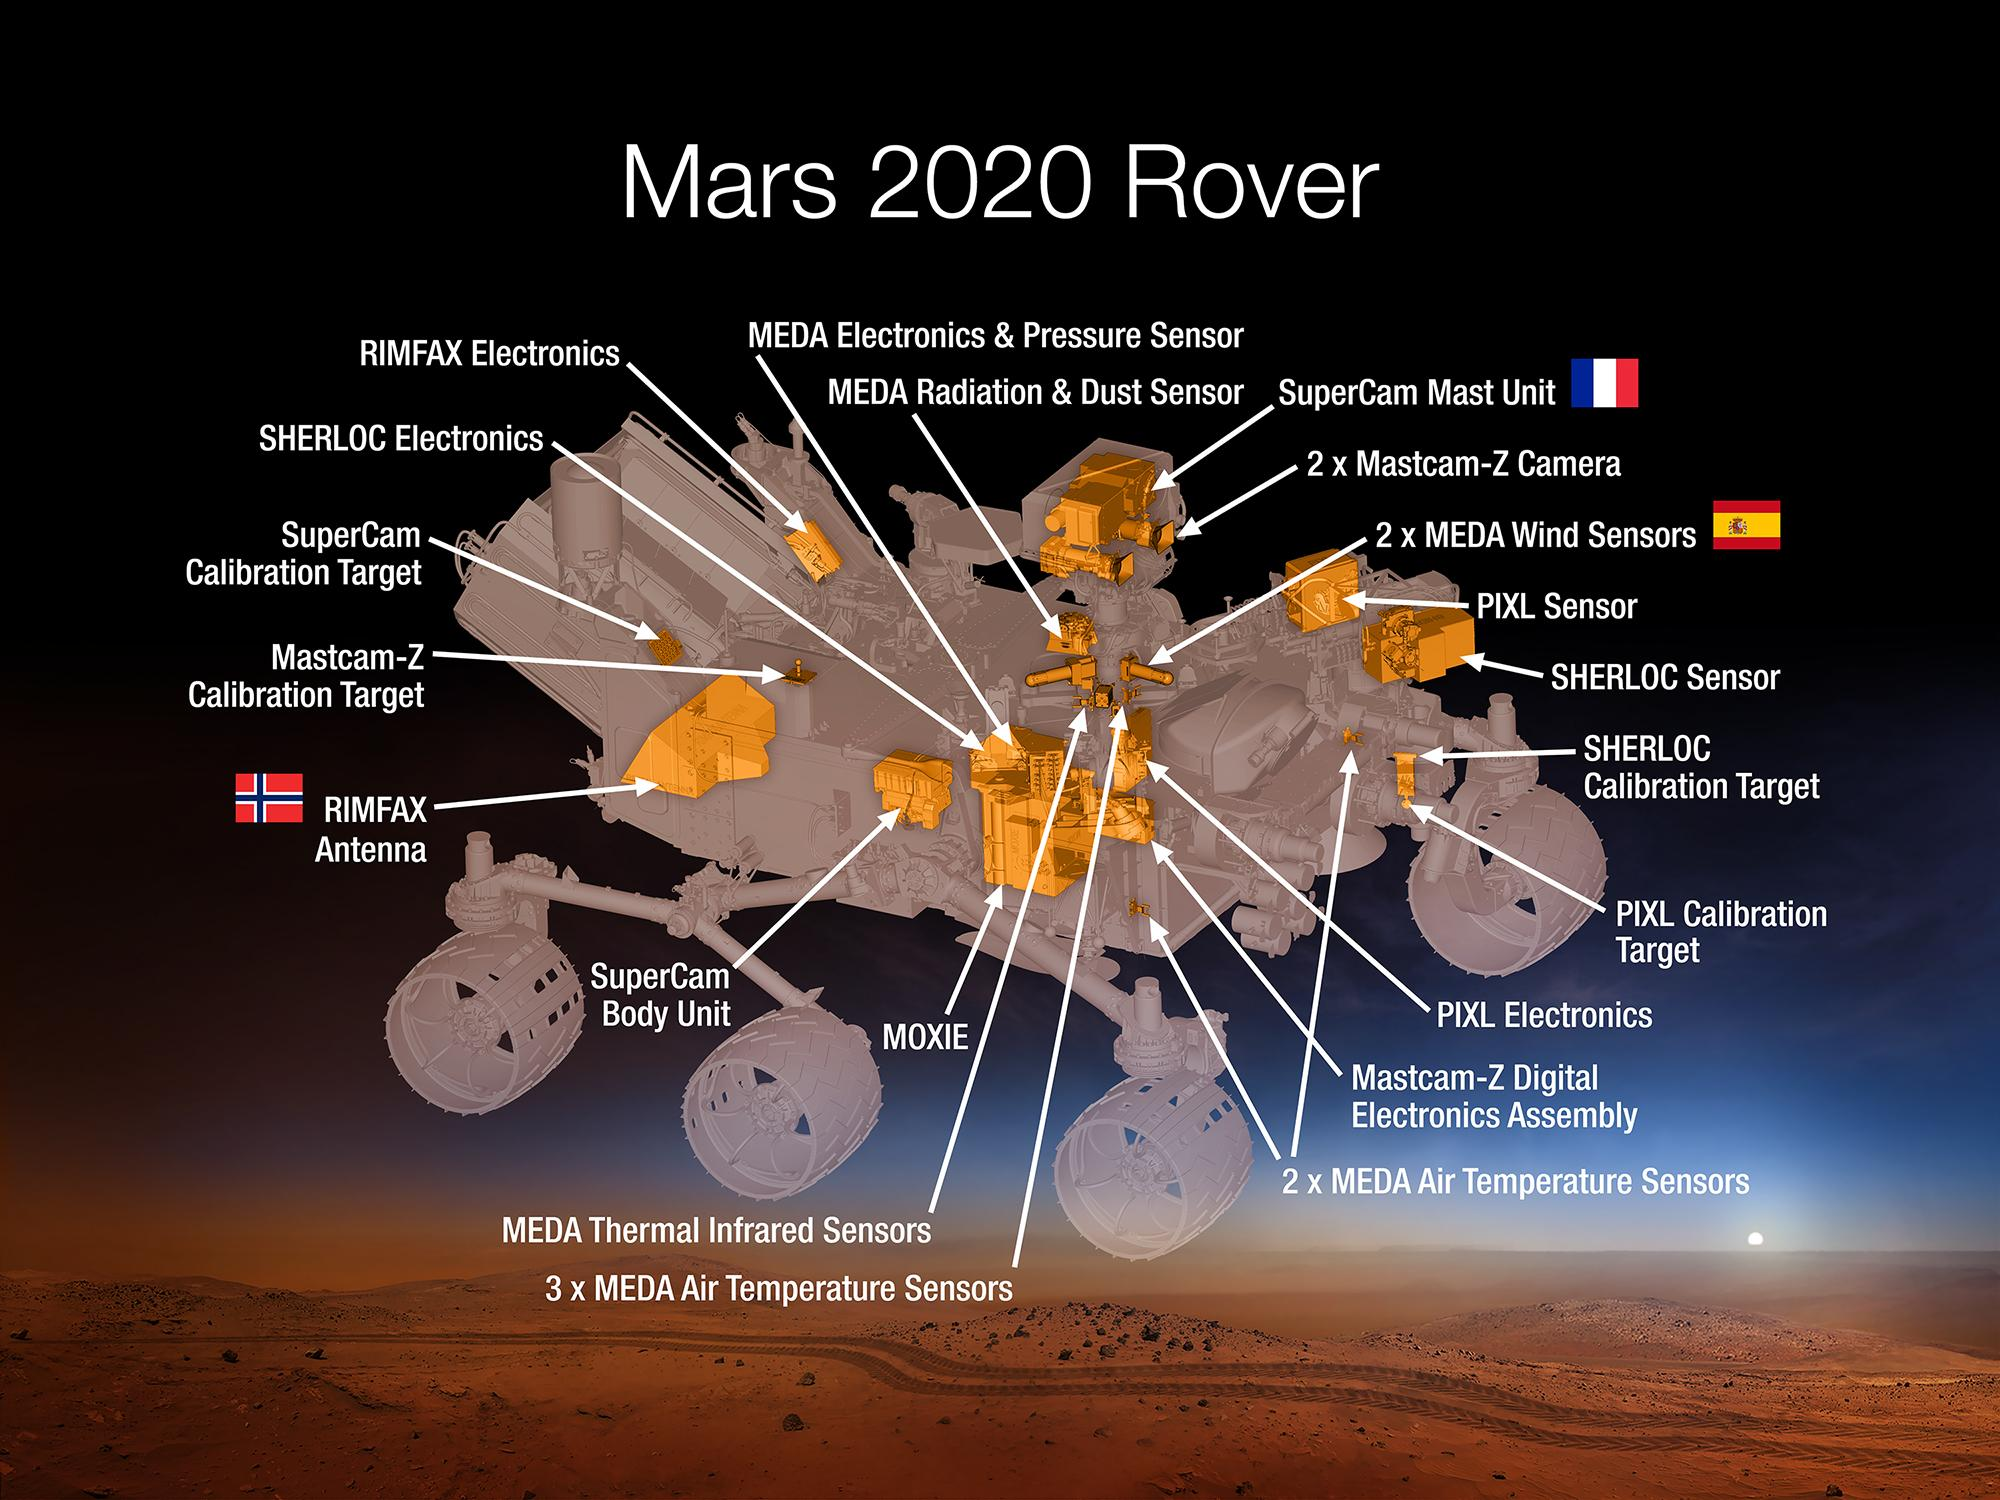 The Mars 2020 rover is loaded with a suite of scientific instruments built with help from top universities from around the globe